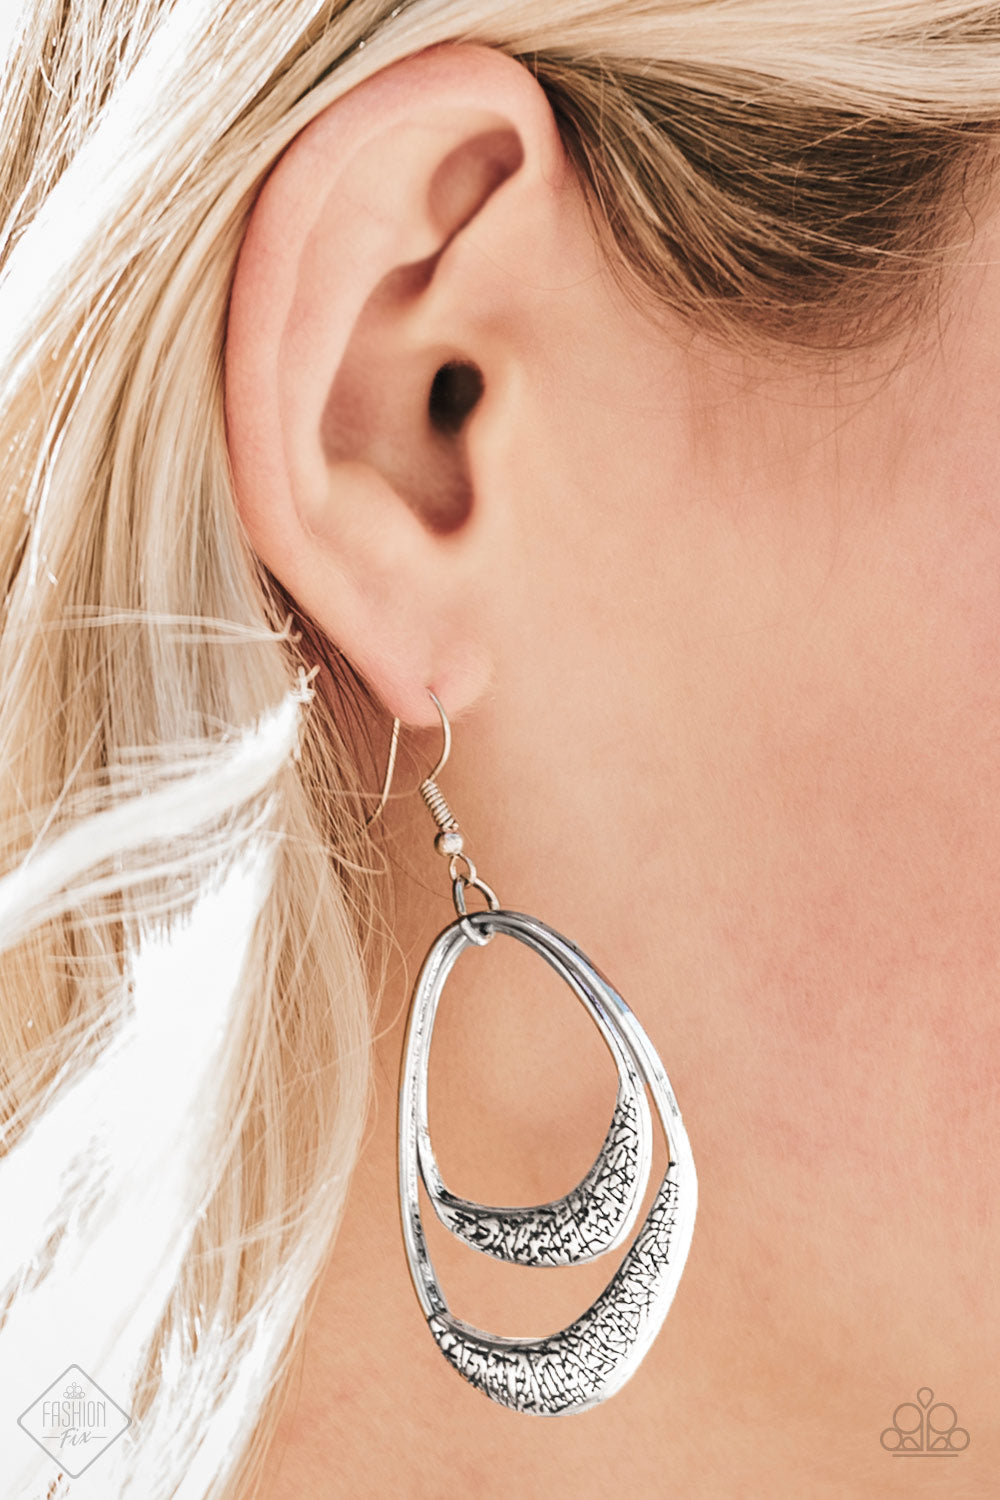 Scratched in shimmery textures, two asymmetrical silver hoops swing from the bottom of a silver link, creating a bold artisan inspired lure. Earring attaches to a standard fishhook fitting.  Sold as one pair of earrings.